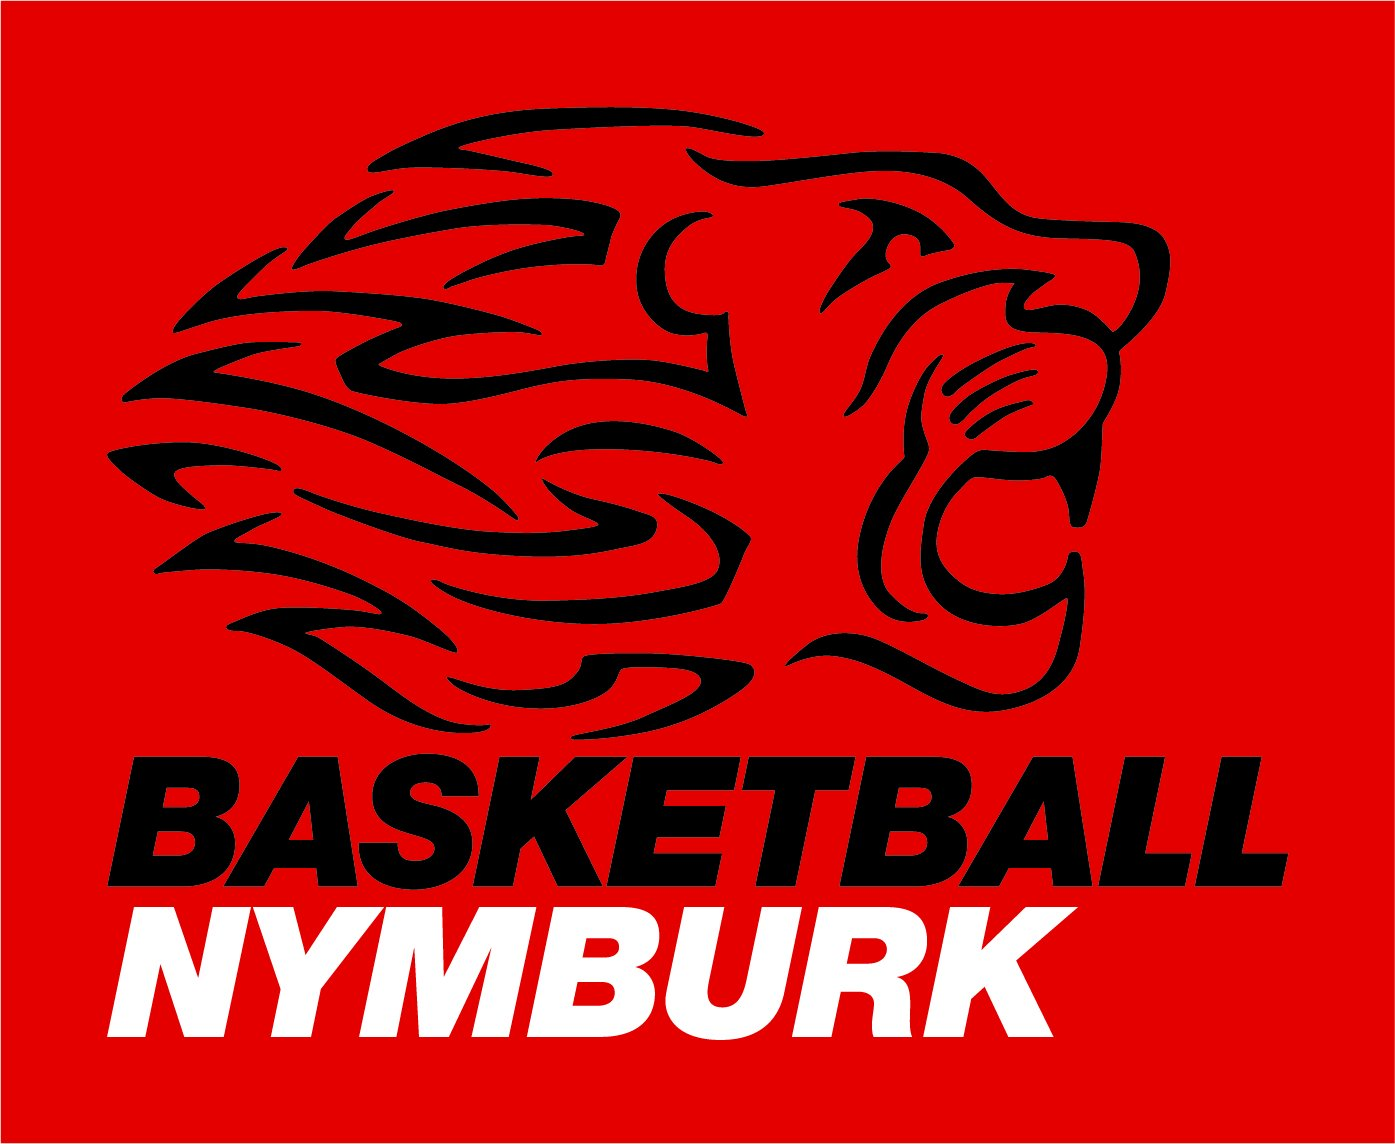 Era Basketball Nymburk logo